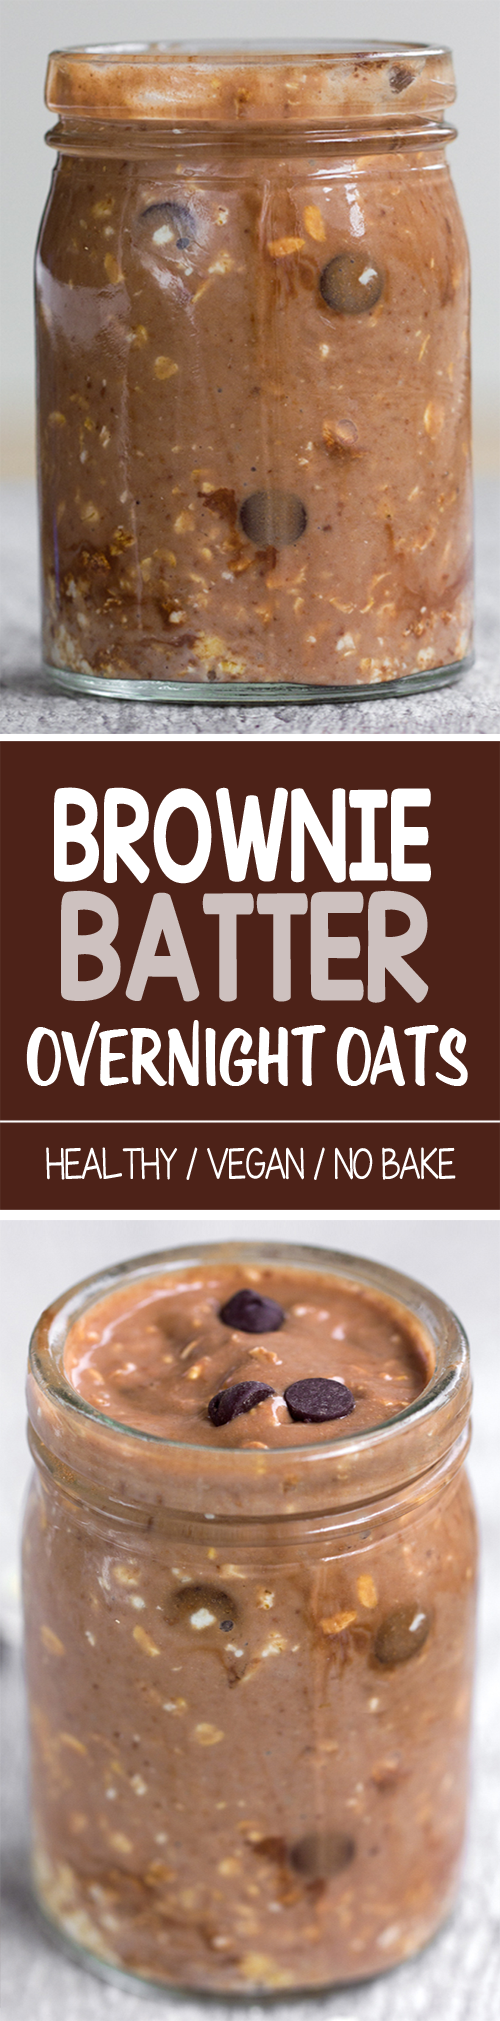 Brownie Batter Overnight Oats. I definitely want to try this!